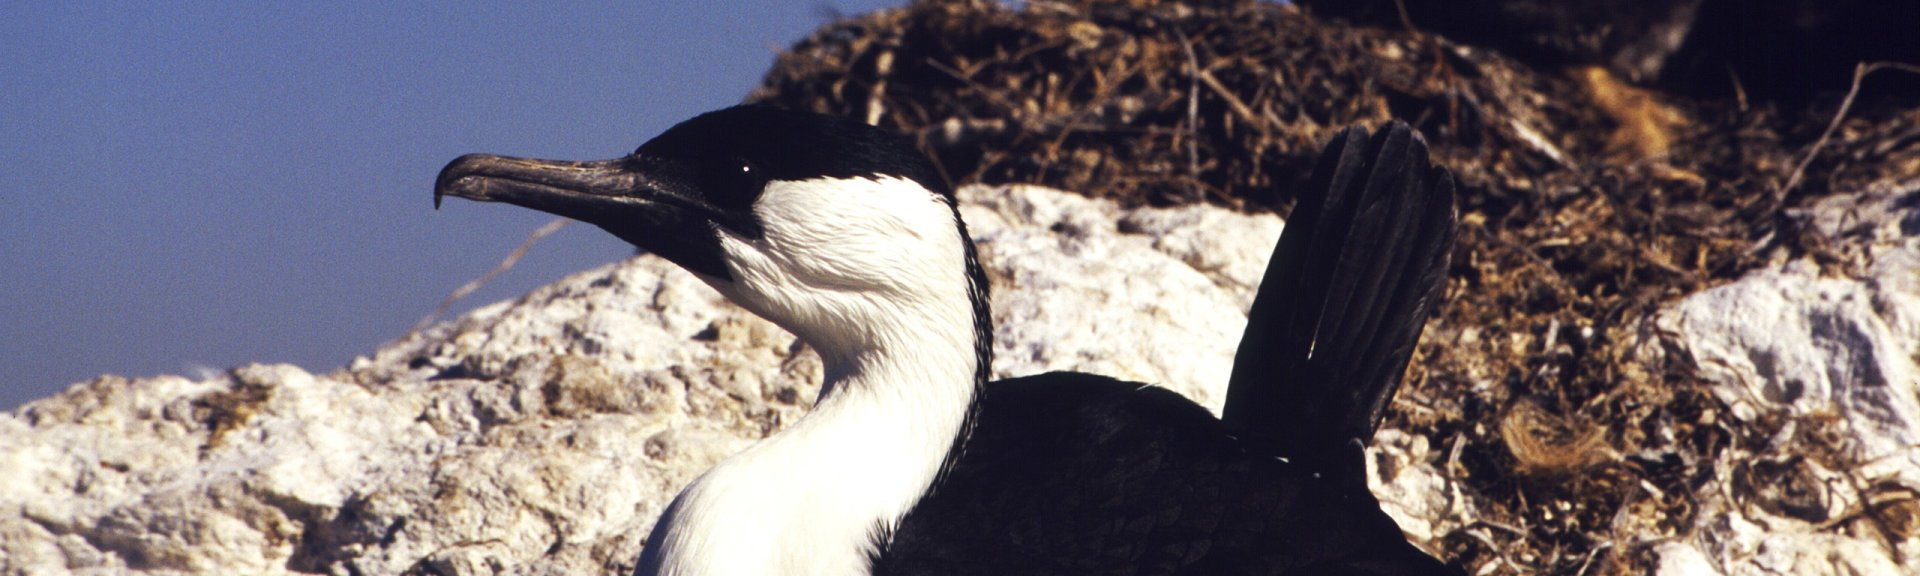 Black-faced cormorant, nesting. Photo from Brian Furby Collection